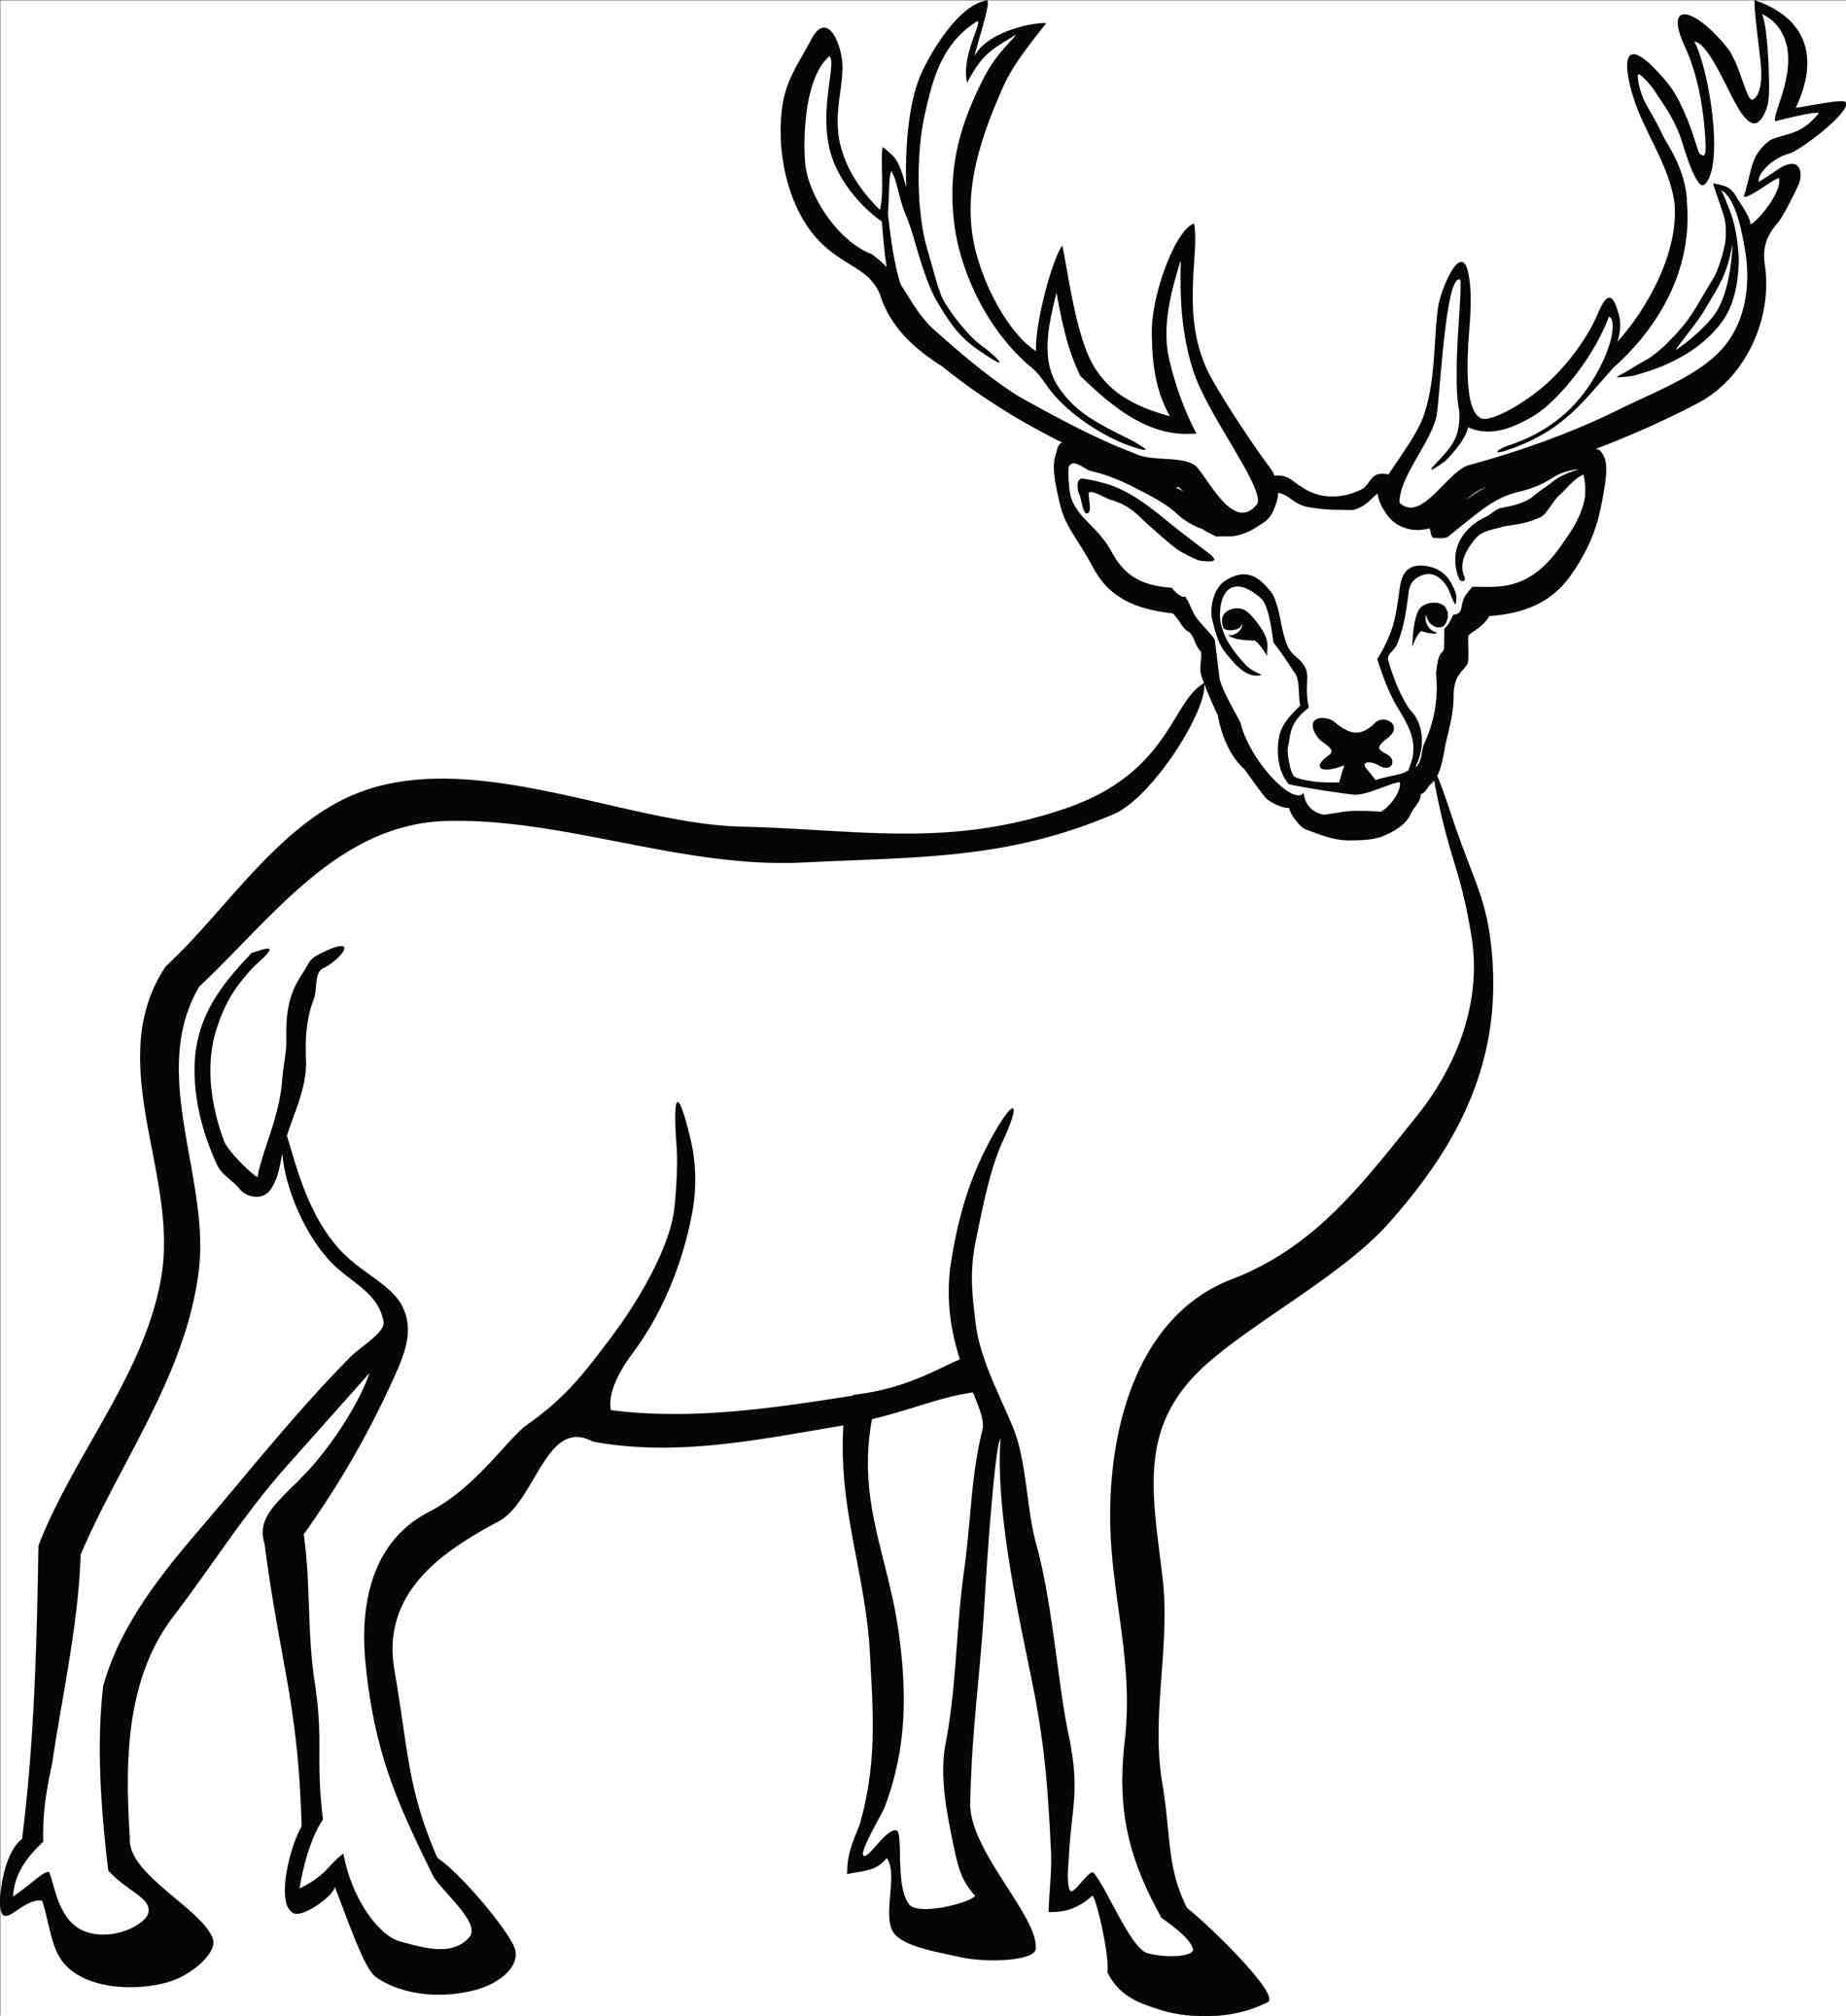 stag head drawing at getdrawings com free for personal reindeer antlers and ears clipart free reindeer antlers clipart